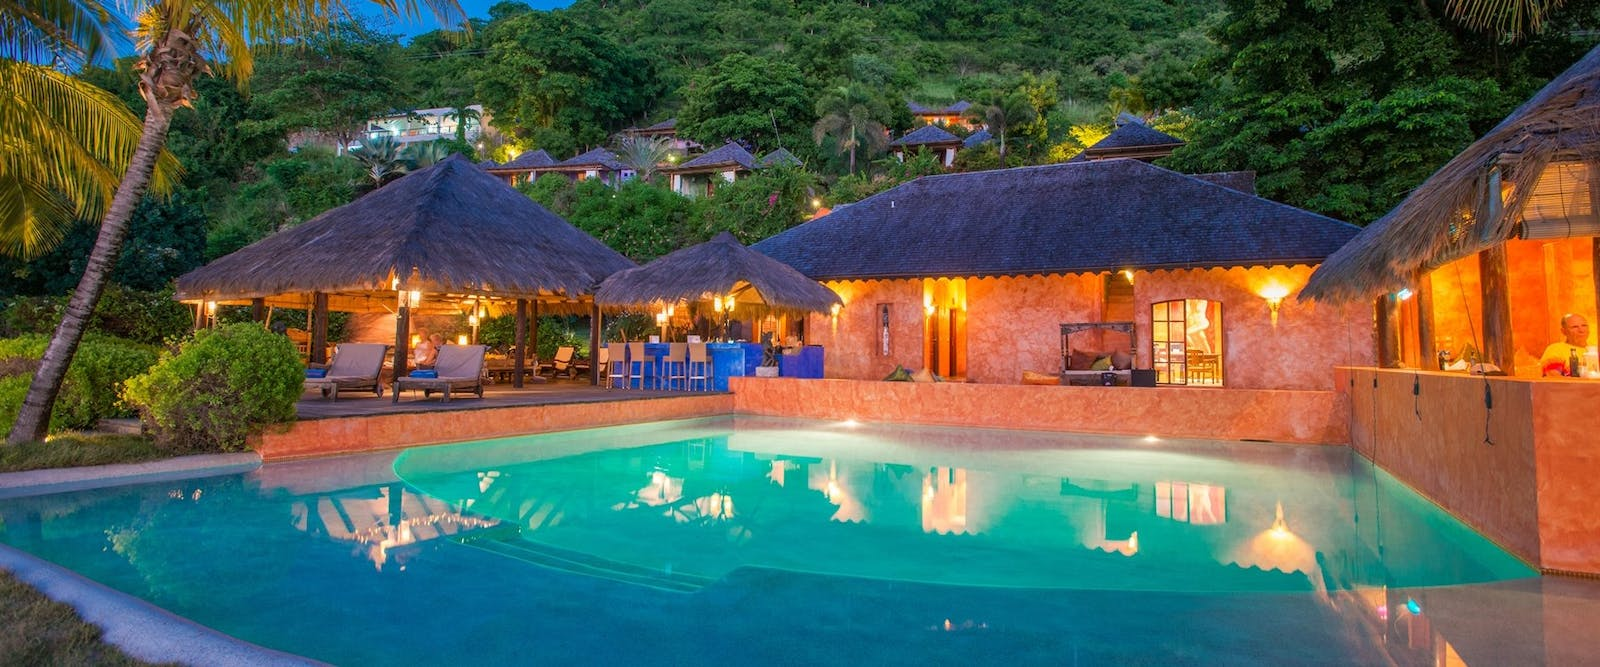 Pool area in the evening at Laluna, Grenada